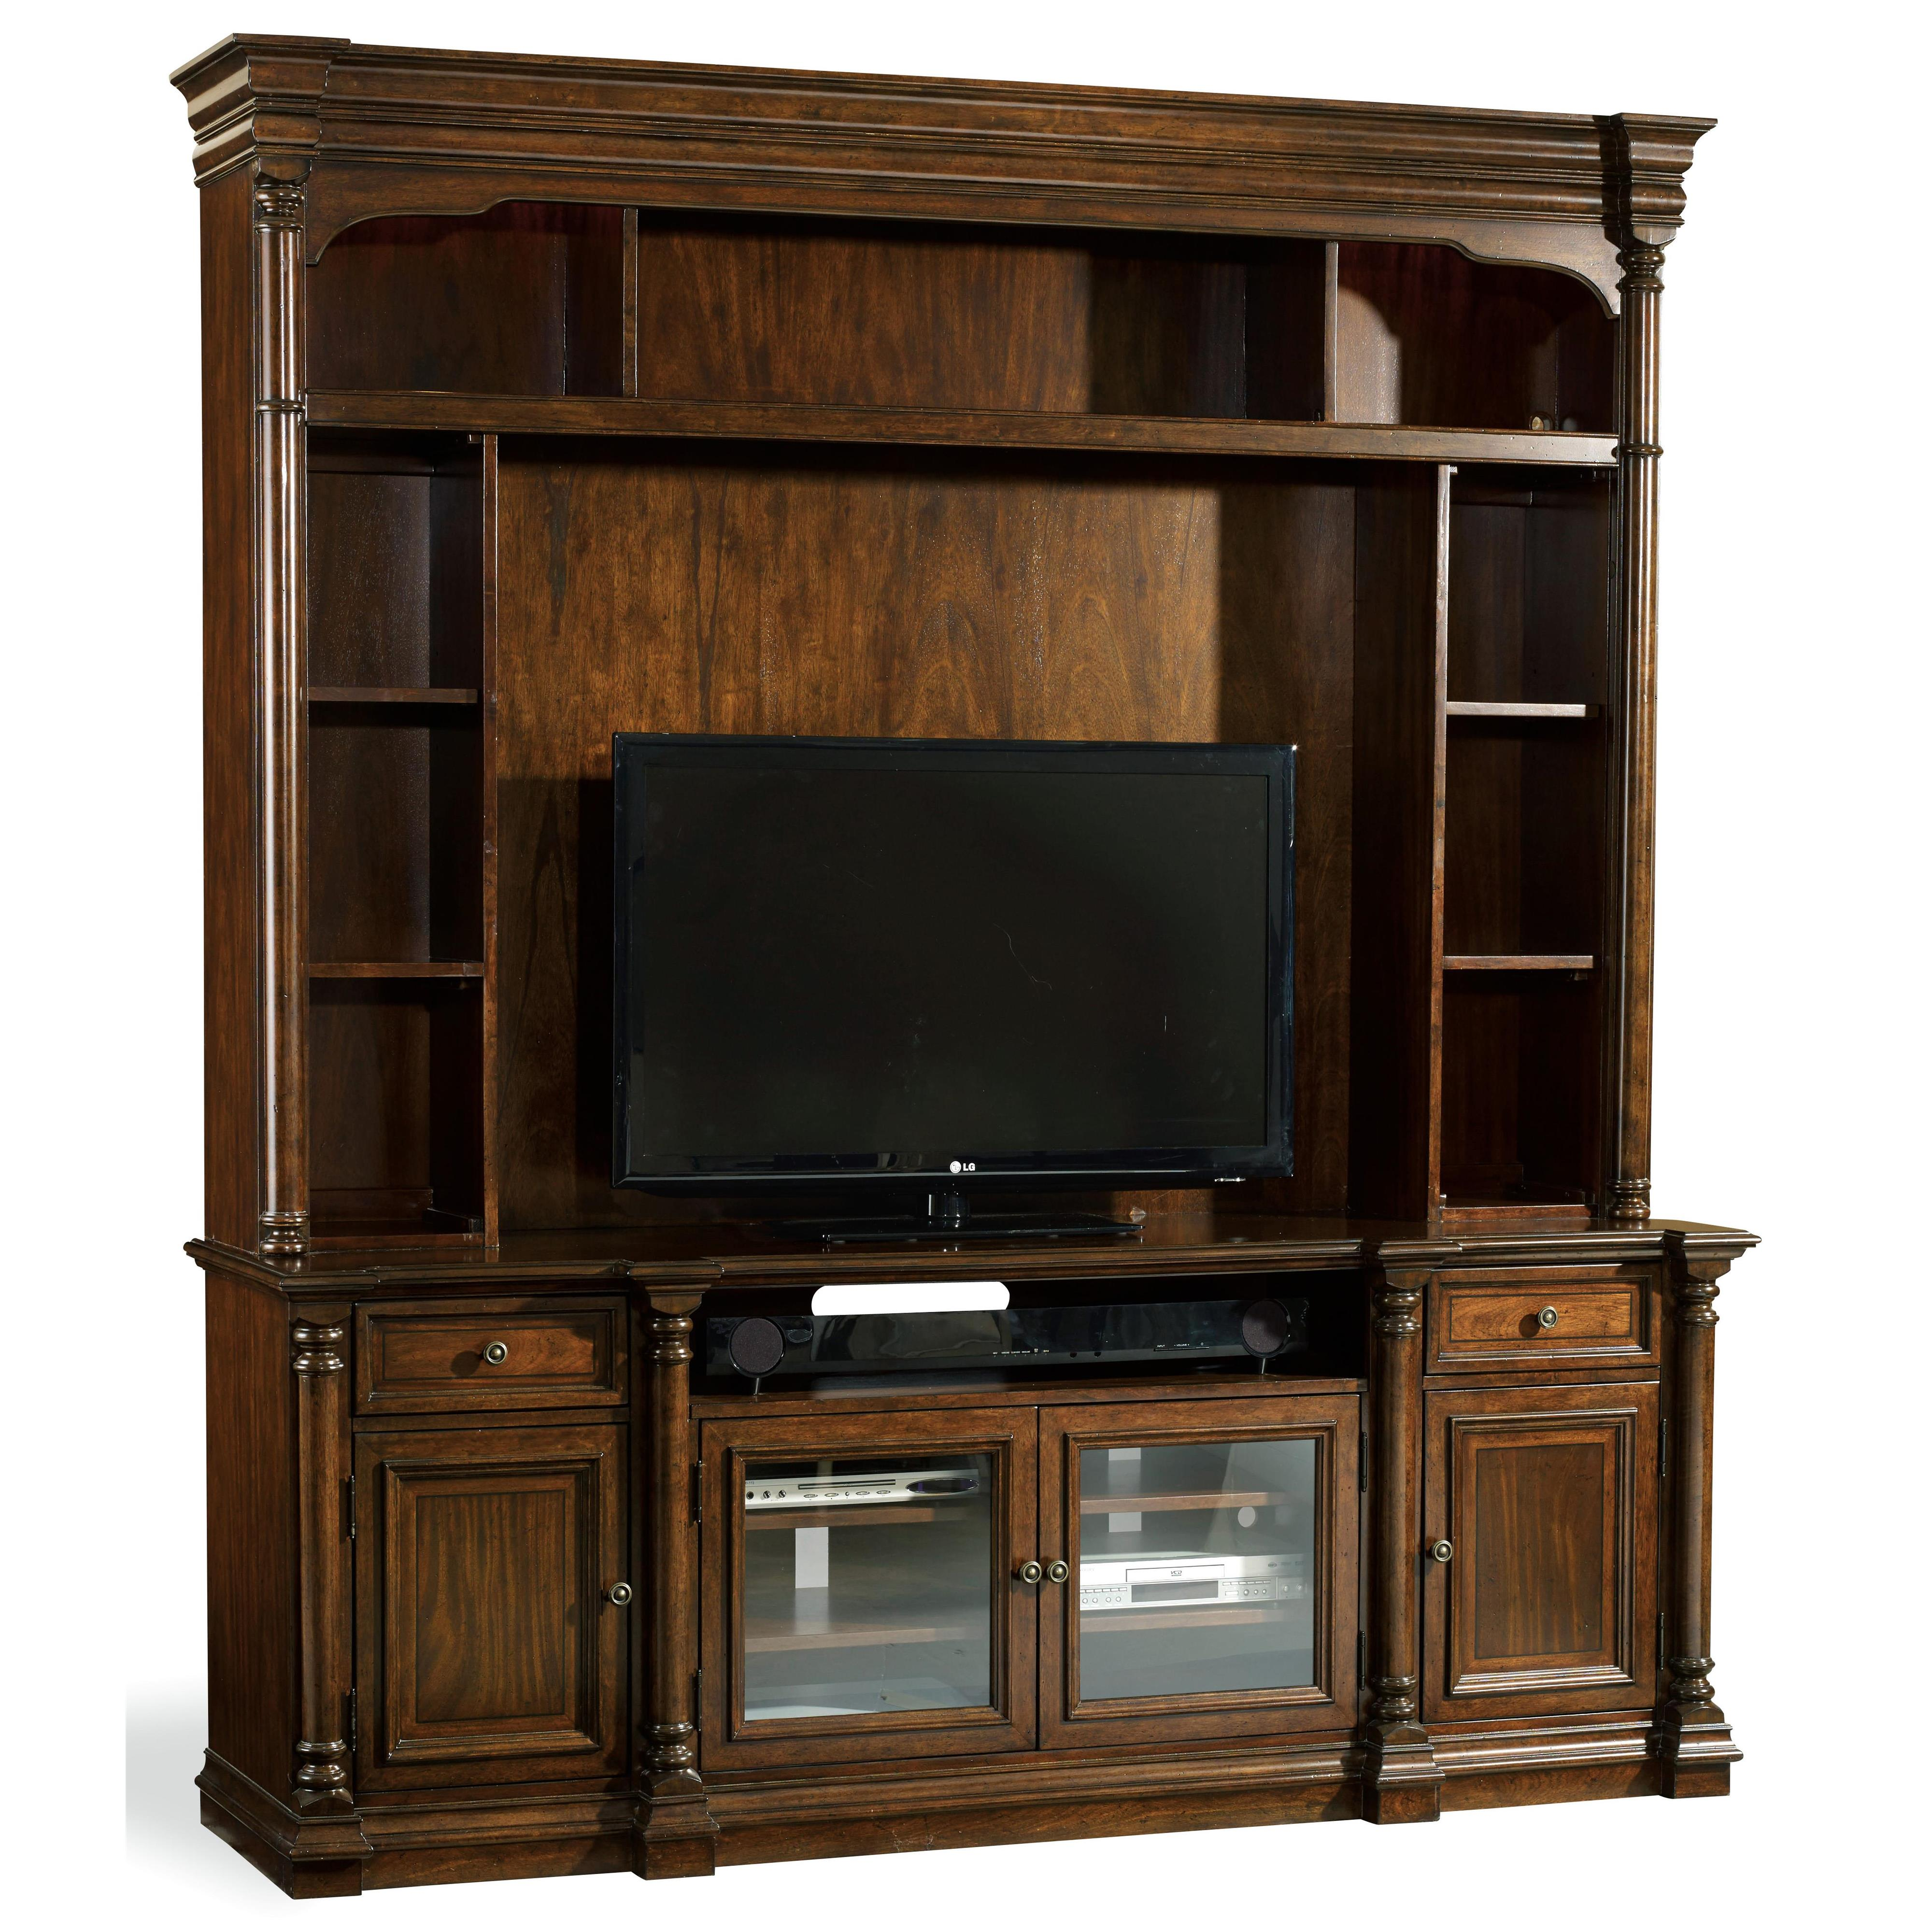 Hooker Furniture Leesburg Two Piece Entertainment Group - Item Number: 5381-55202